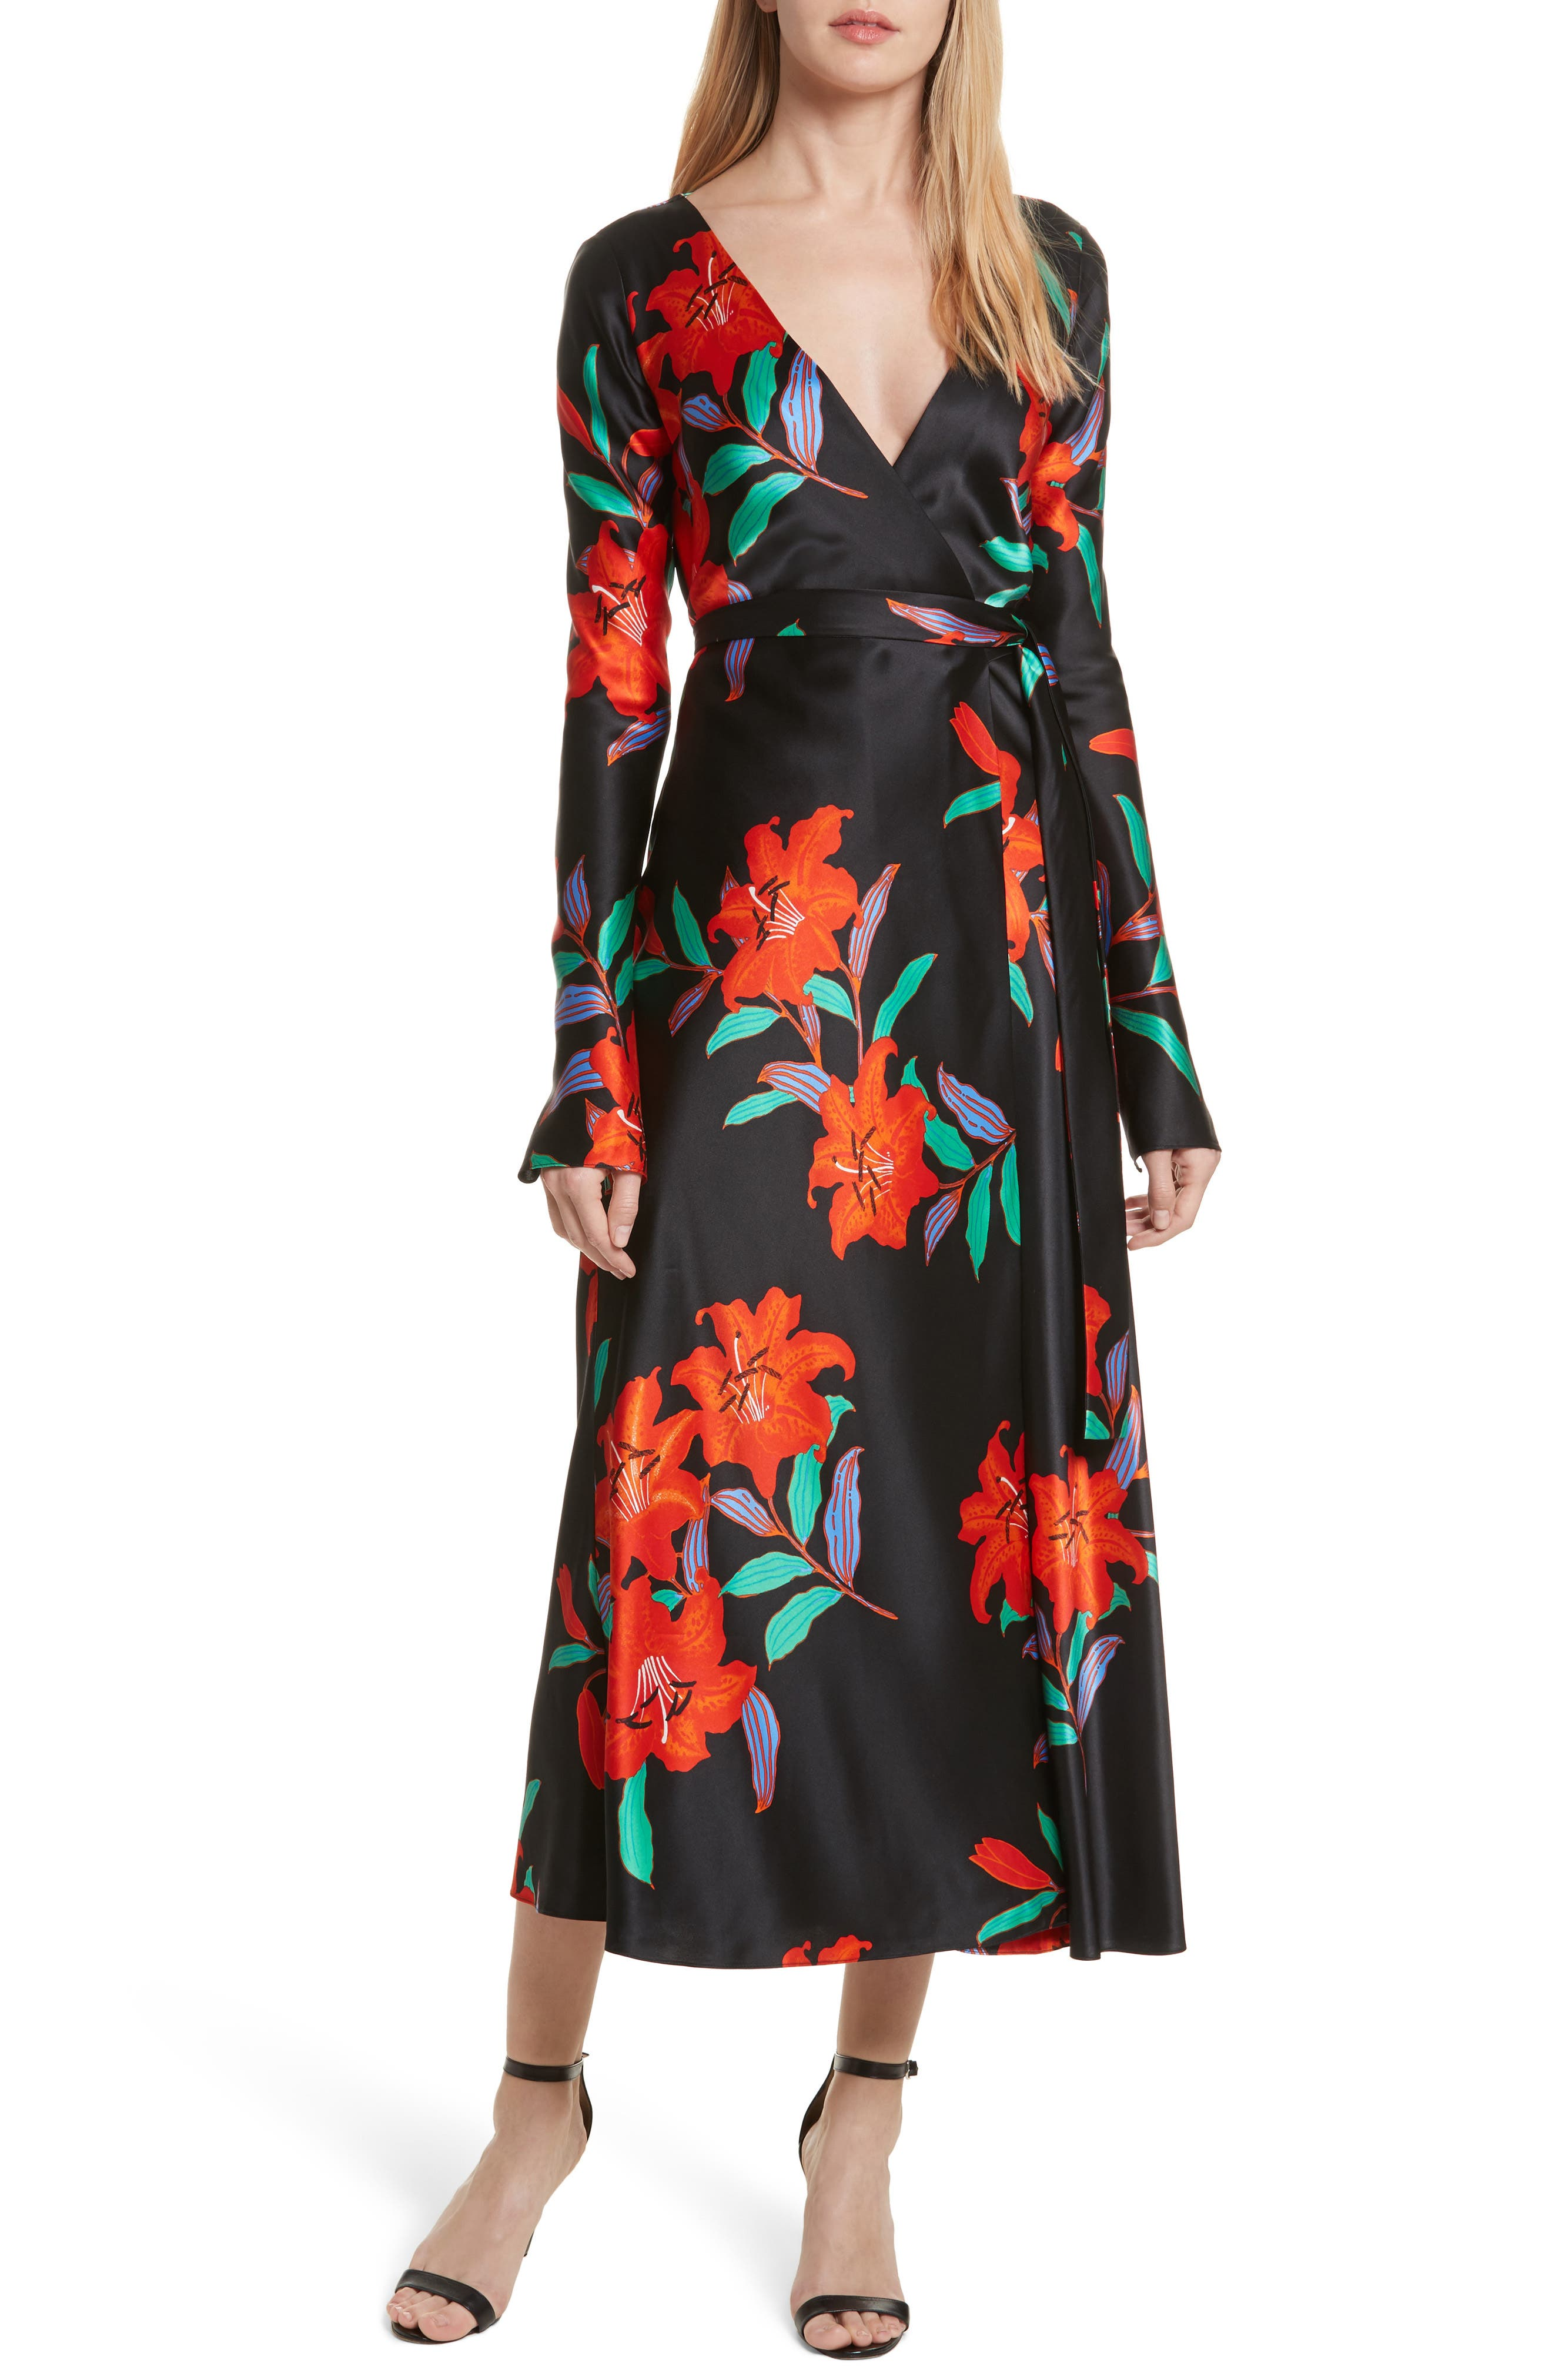 Diane von Furstenberg Floral Print Wrap Silk Dress,                             Main thumbnail 1, color,                             001